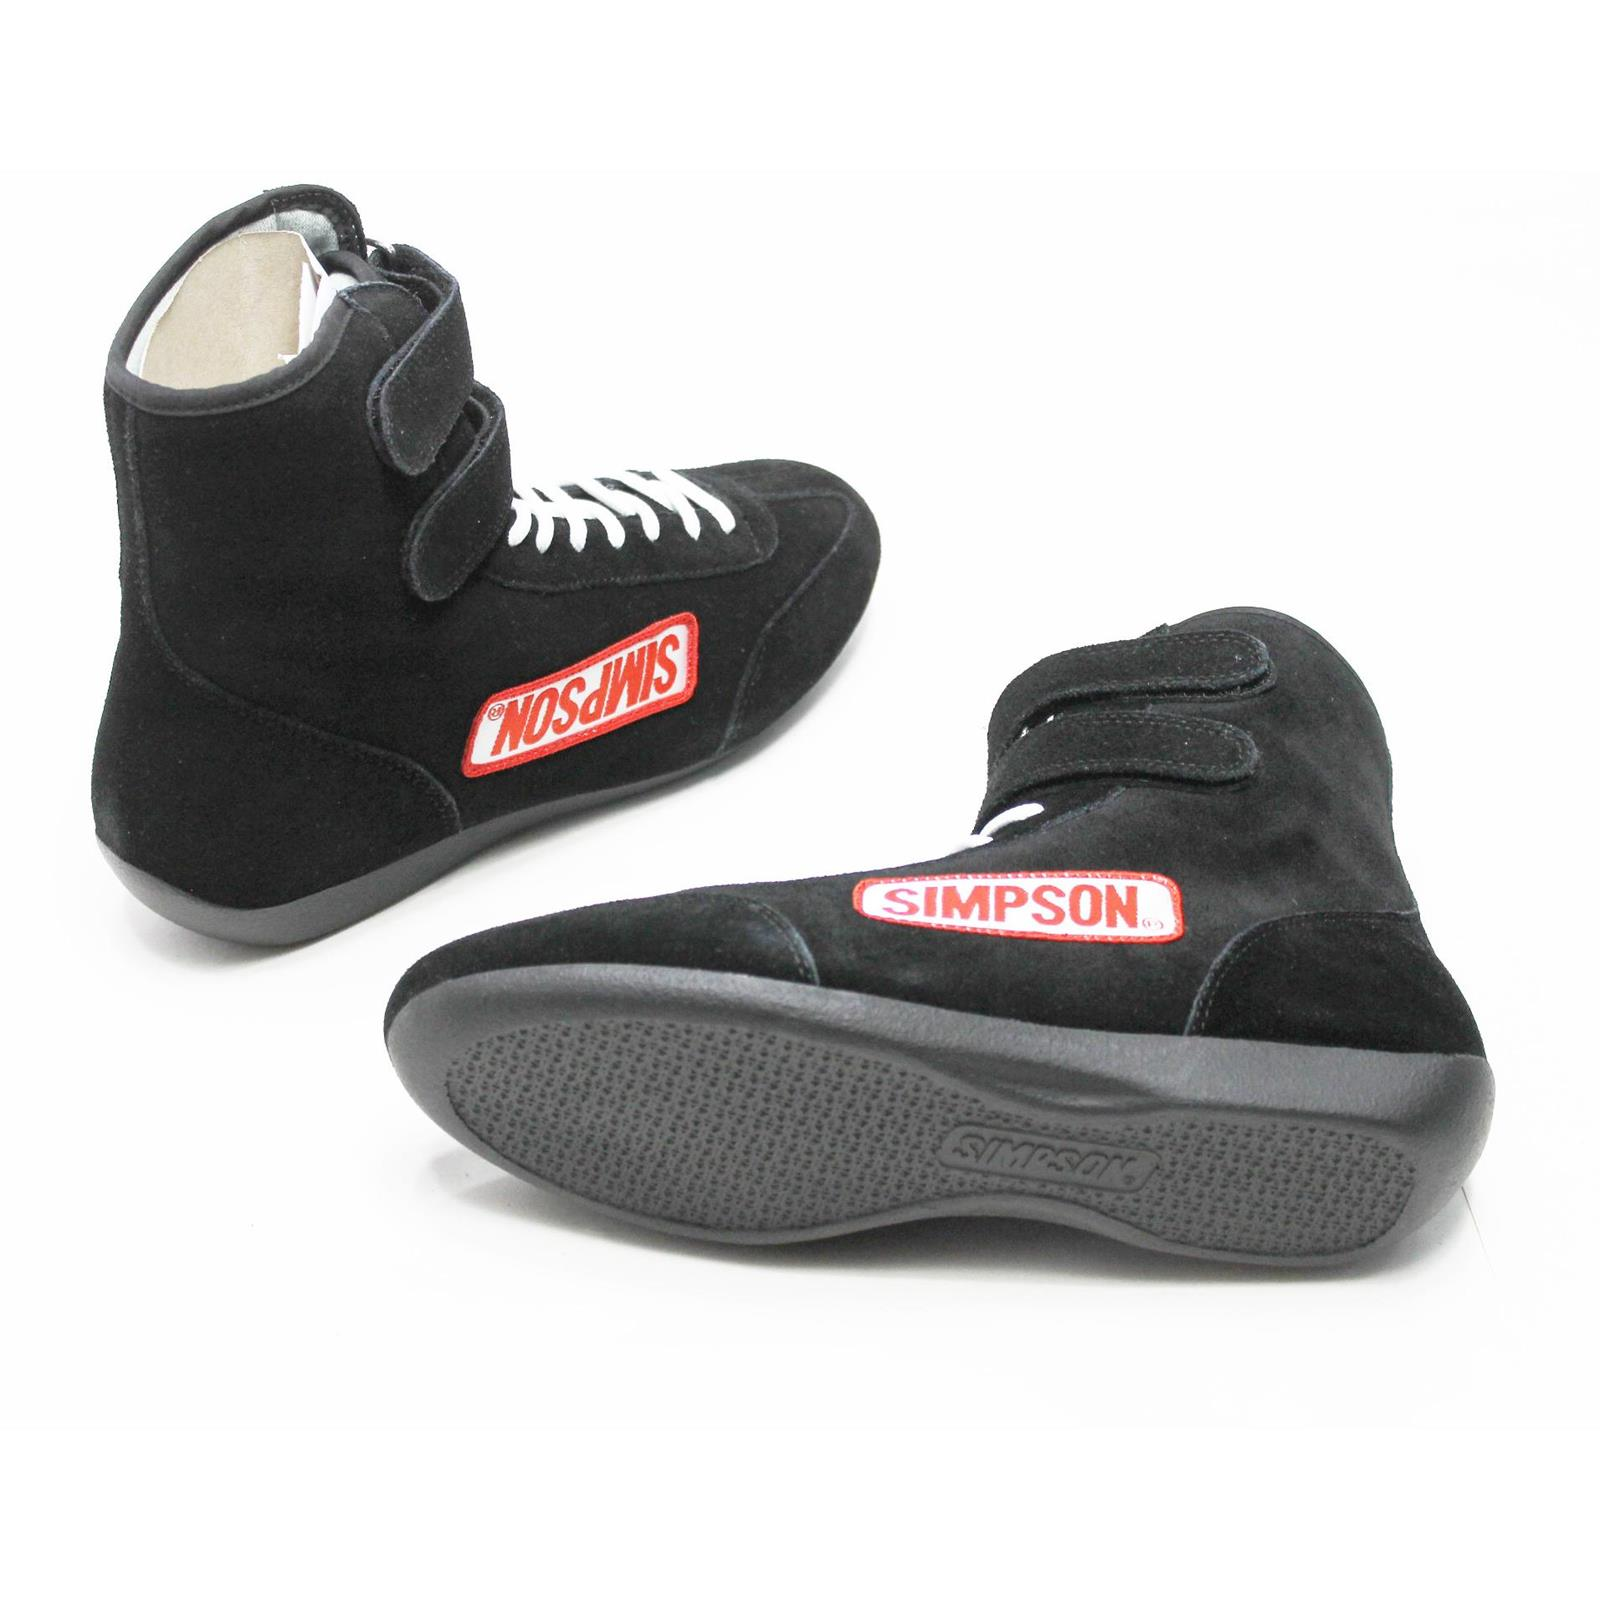 Simpson BK Suede Hightop Driving Shoes Black